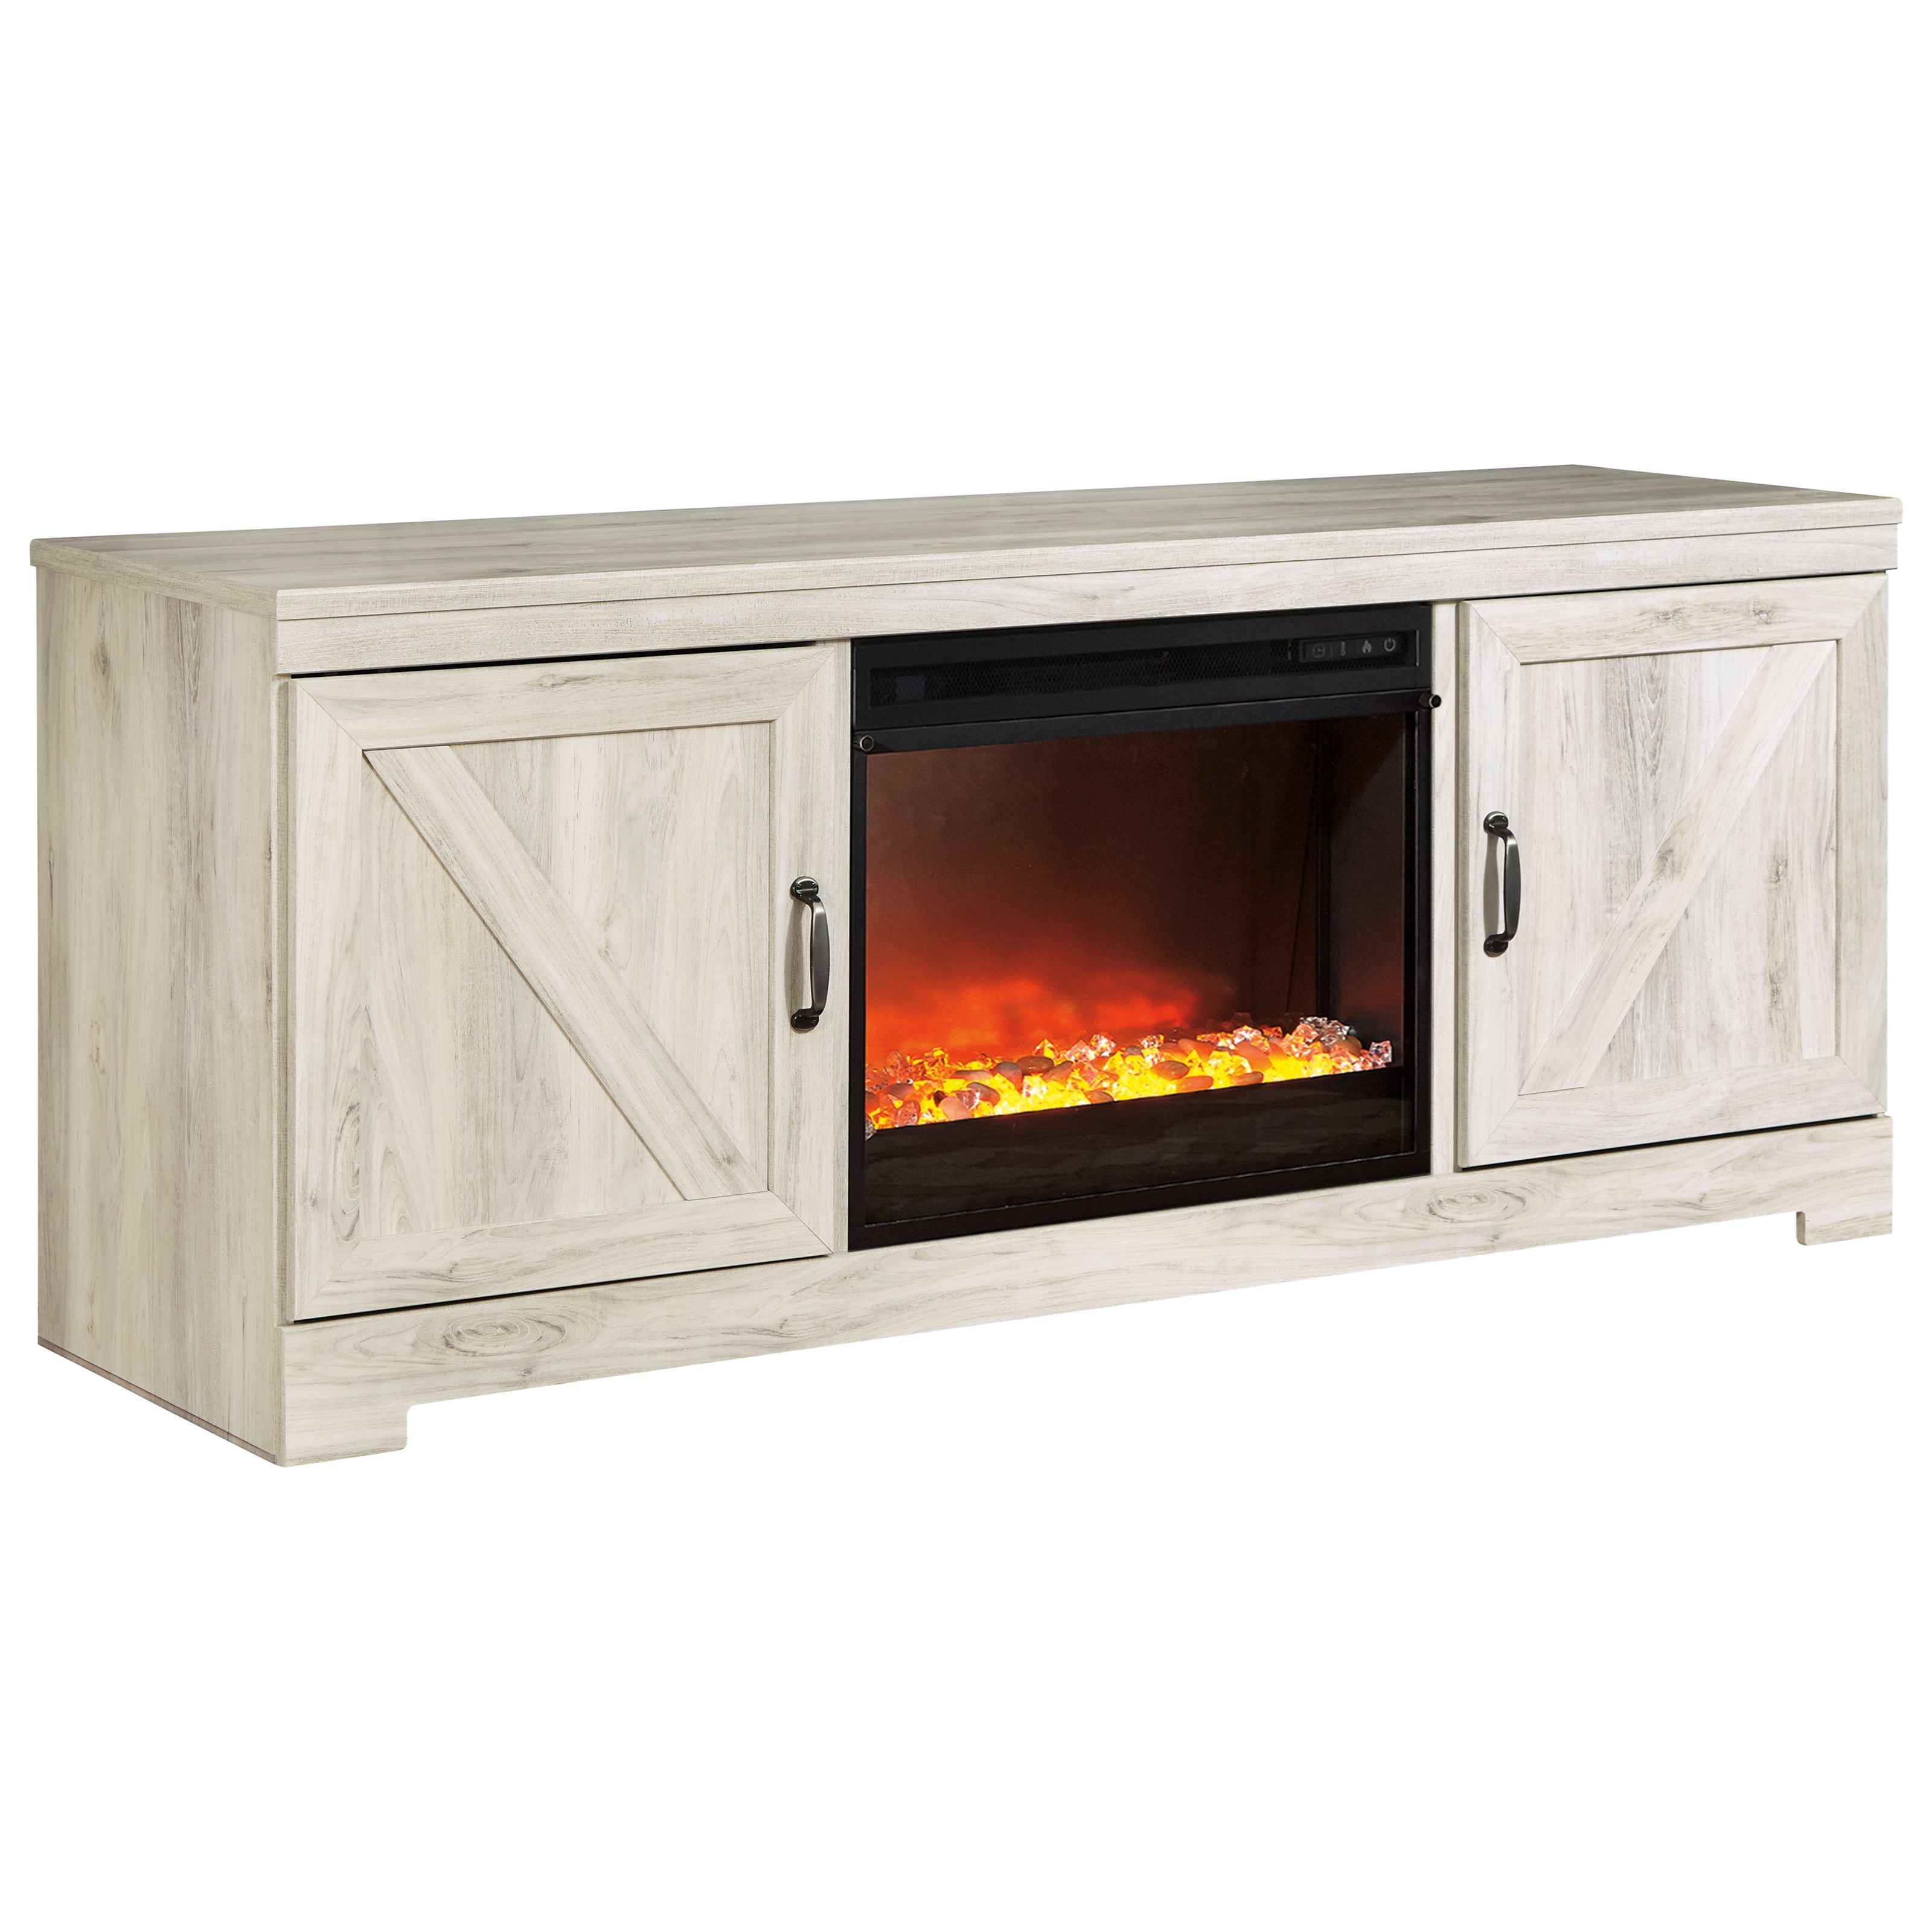 Large TV Stand with Fireplace